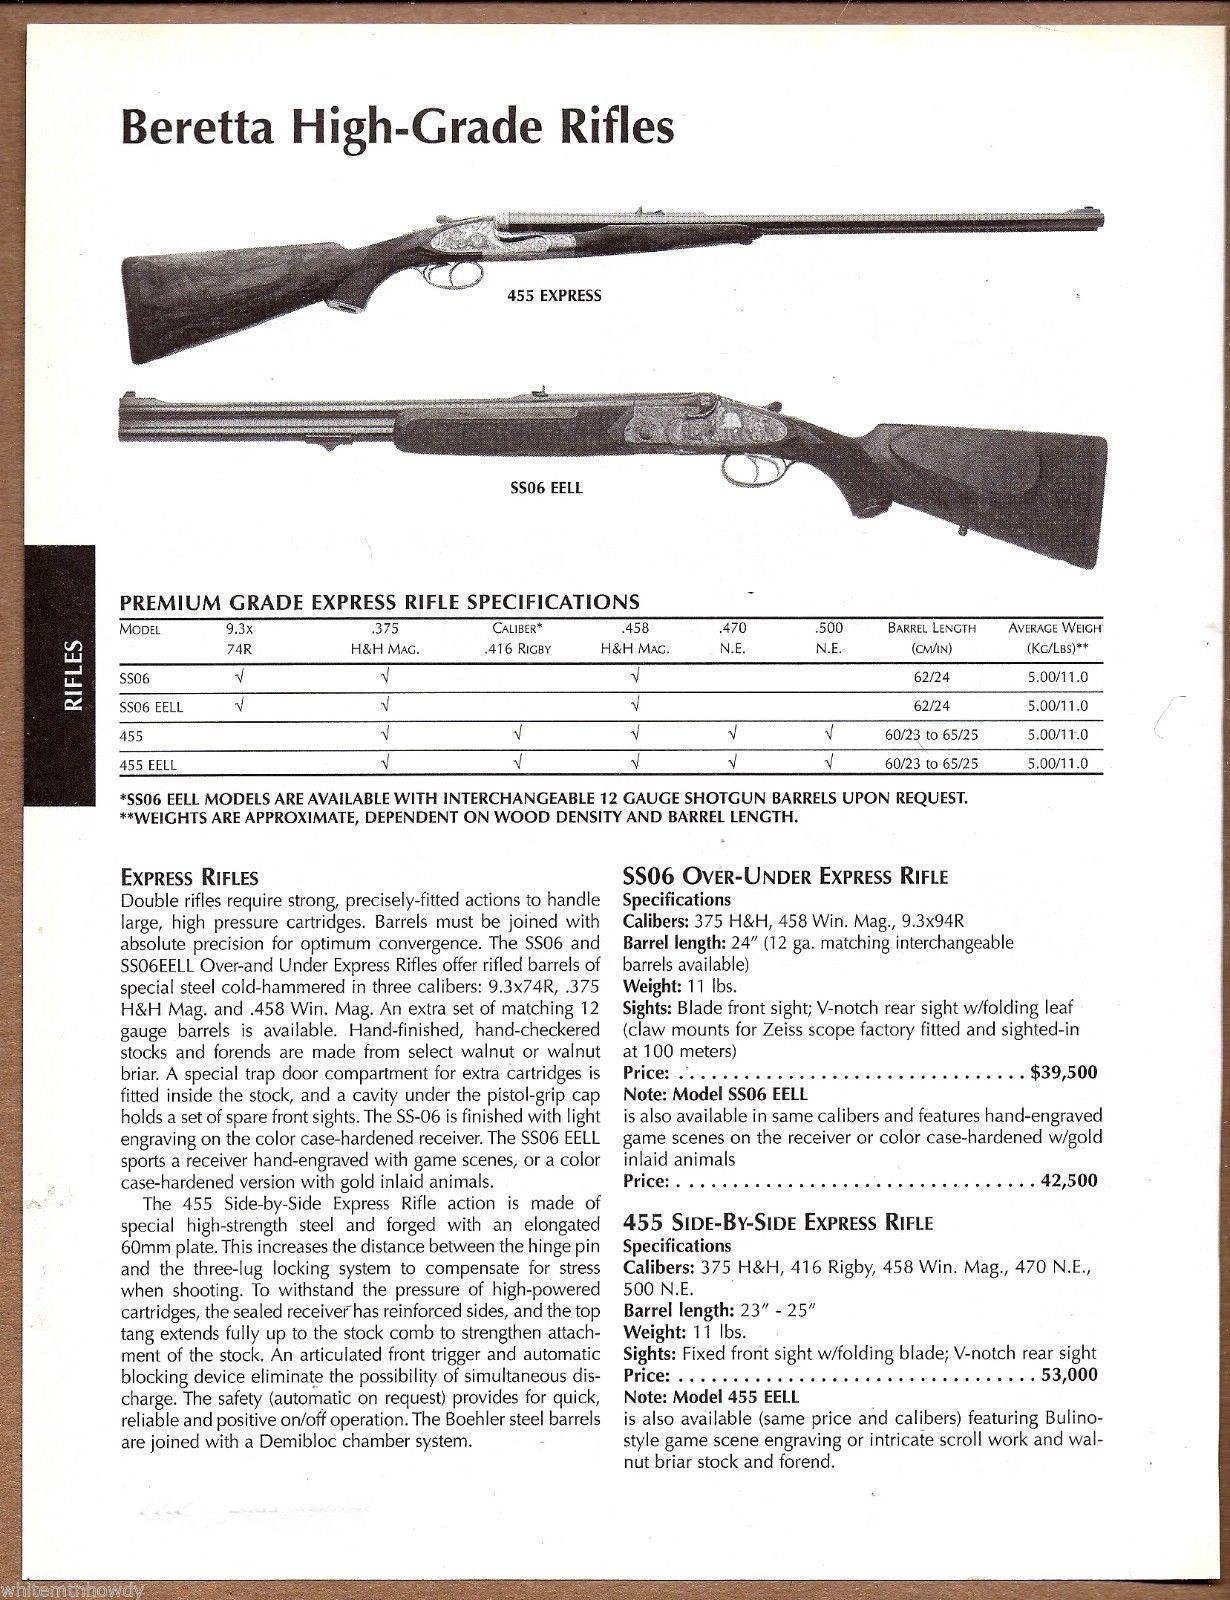 Original newspaper advertisement featuring the Beretta 455. (Picture courtesy E-bay).